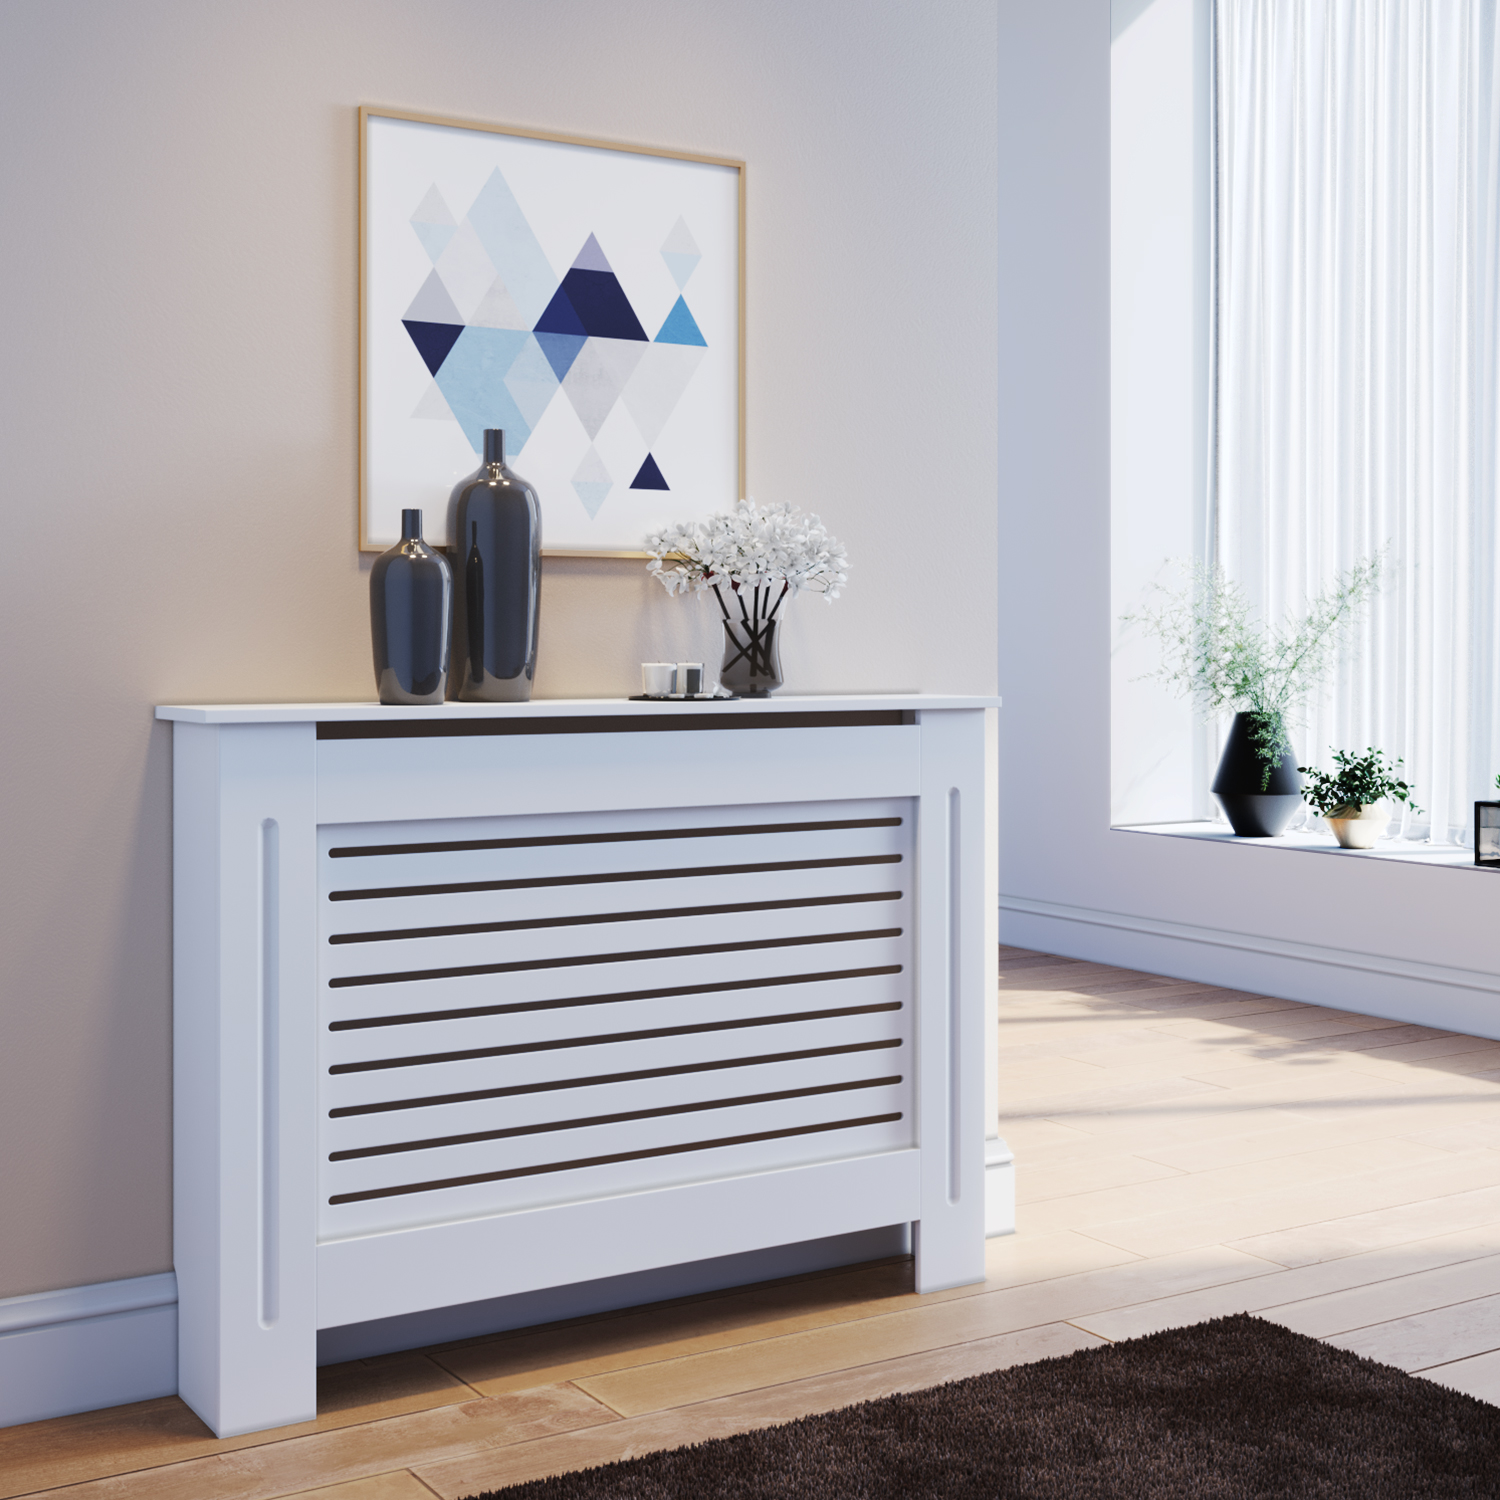 Radiator Cover Medium White Painted Cabinet Mdf Wood Heating Cover Home Decor Ebay